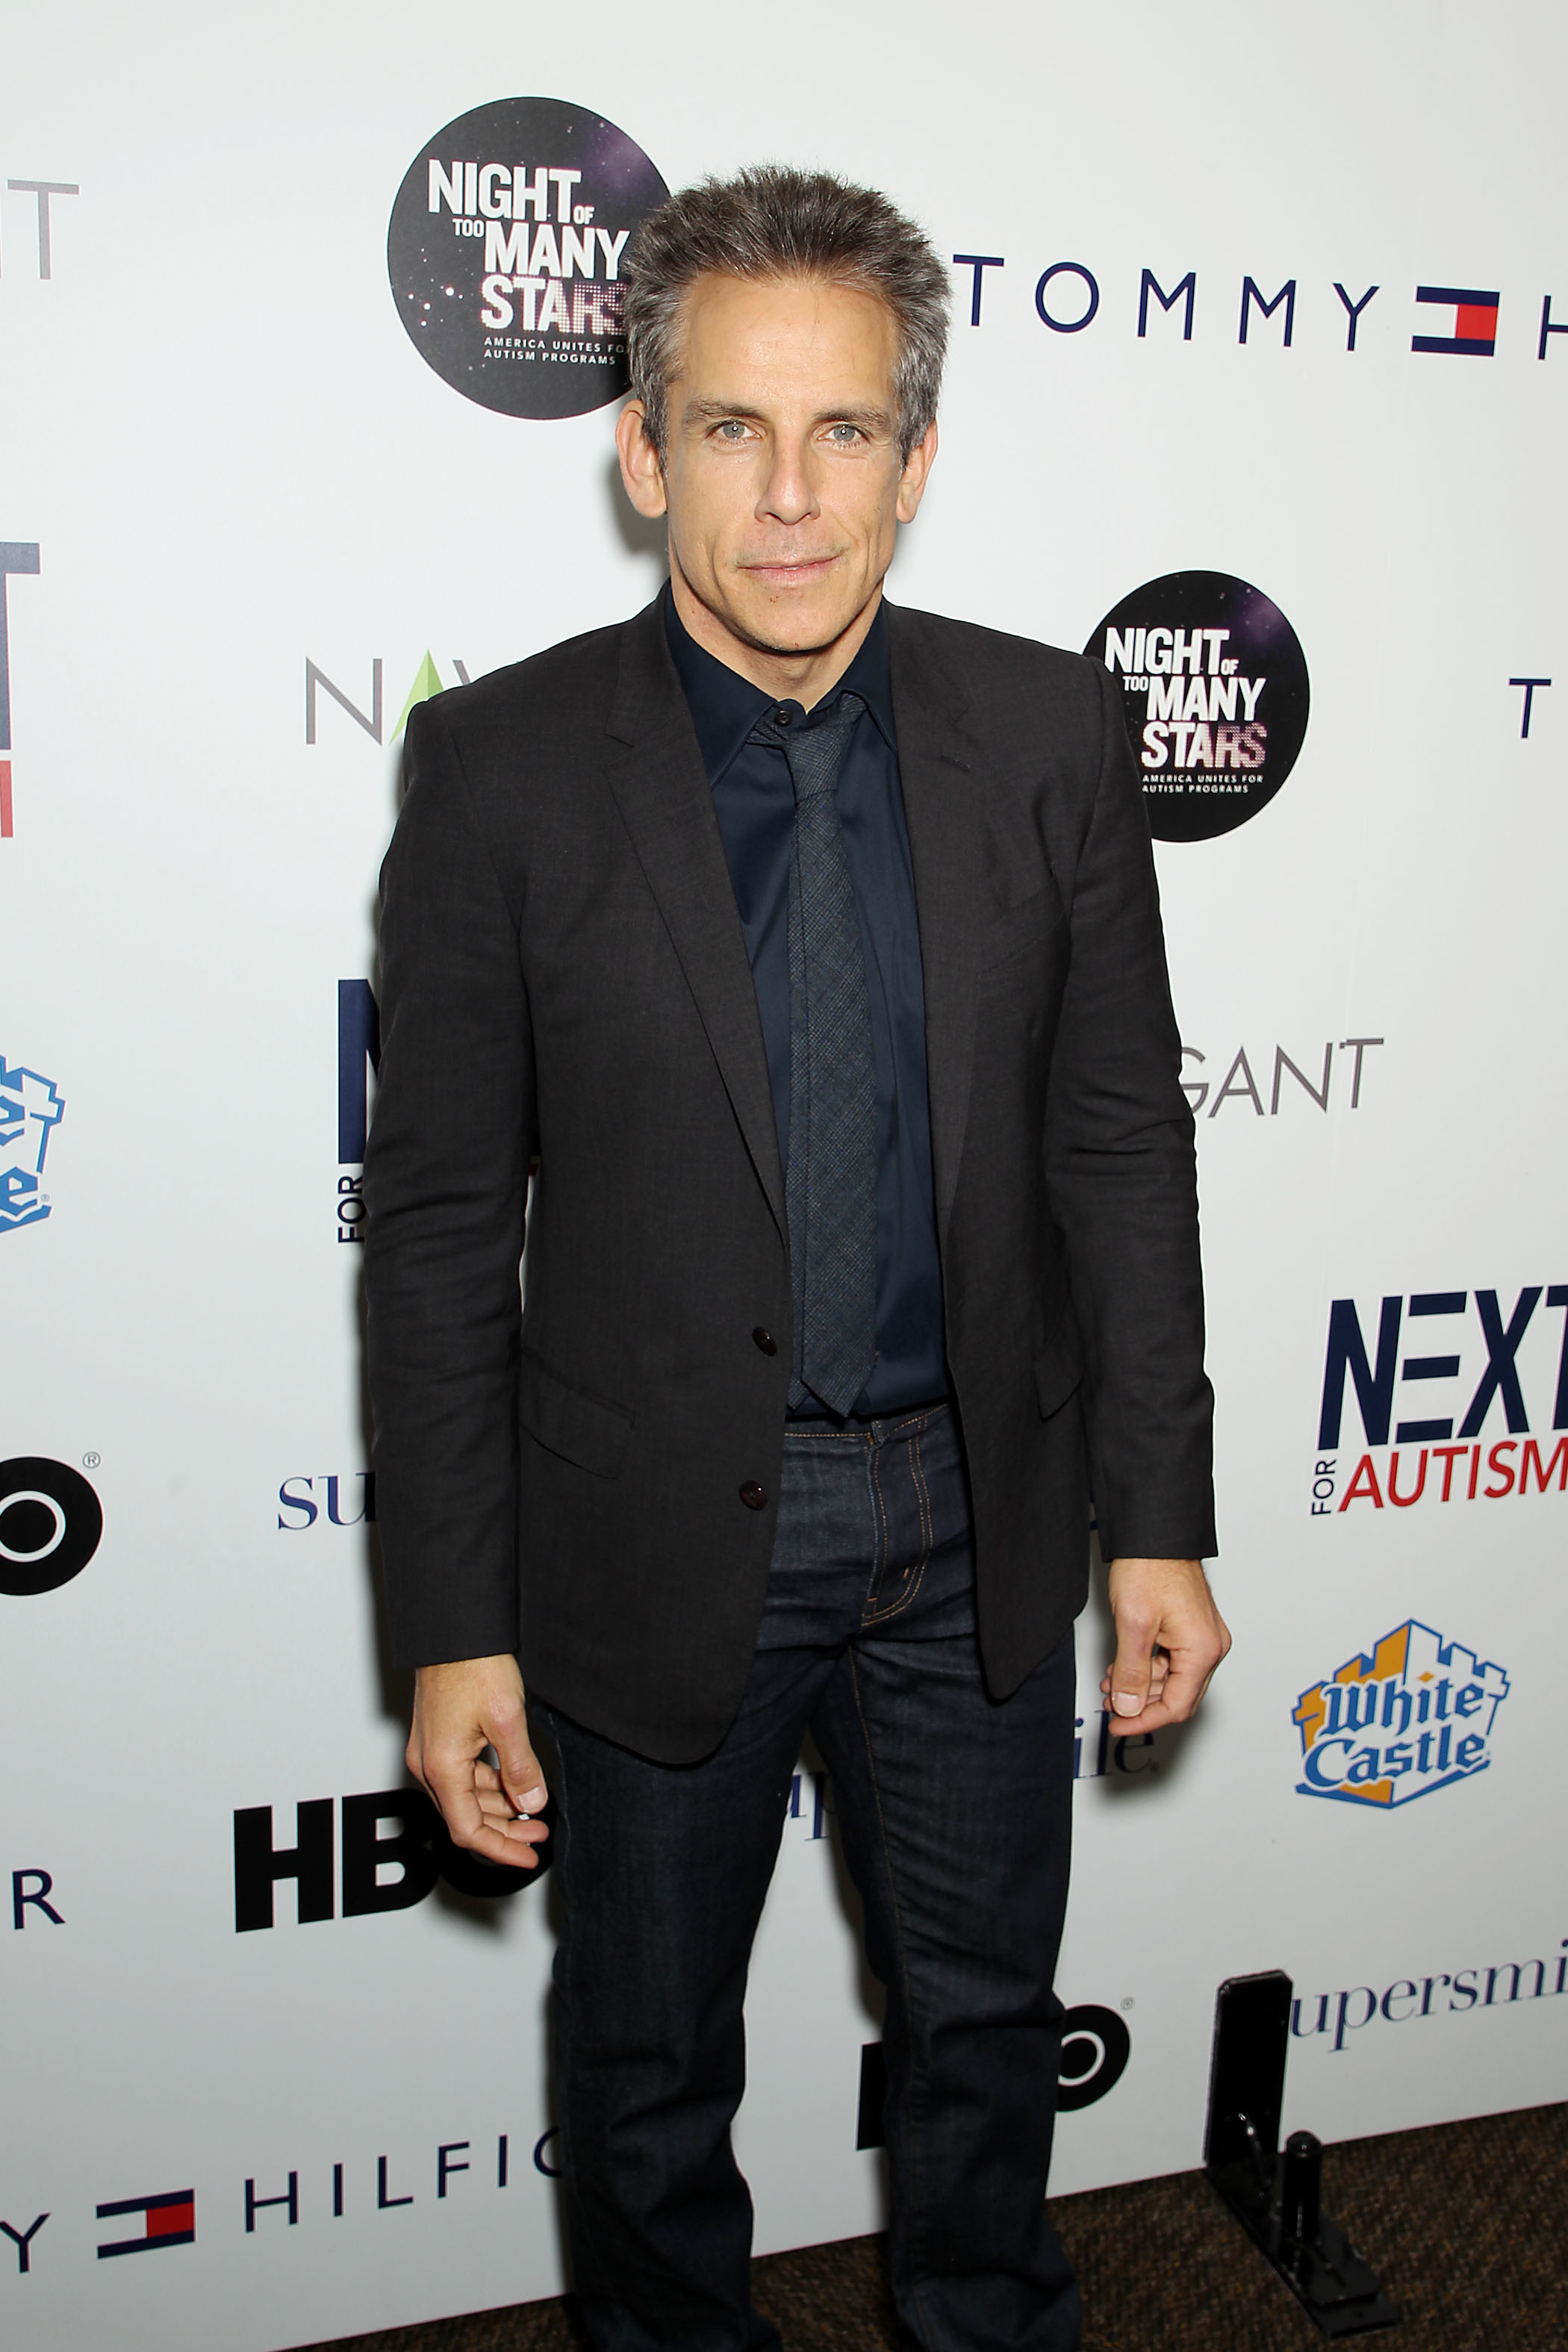 Ben Stiller attends the HBO Presents Night of Too Many Stars: America Unites for Autism Programs held at The Theater at Madison Square Garden in New York City on Nov. 18, 2017.